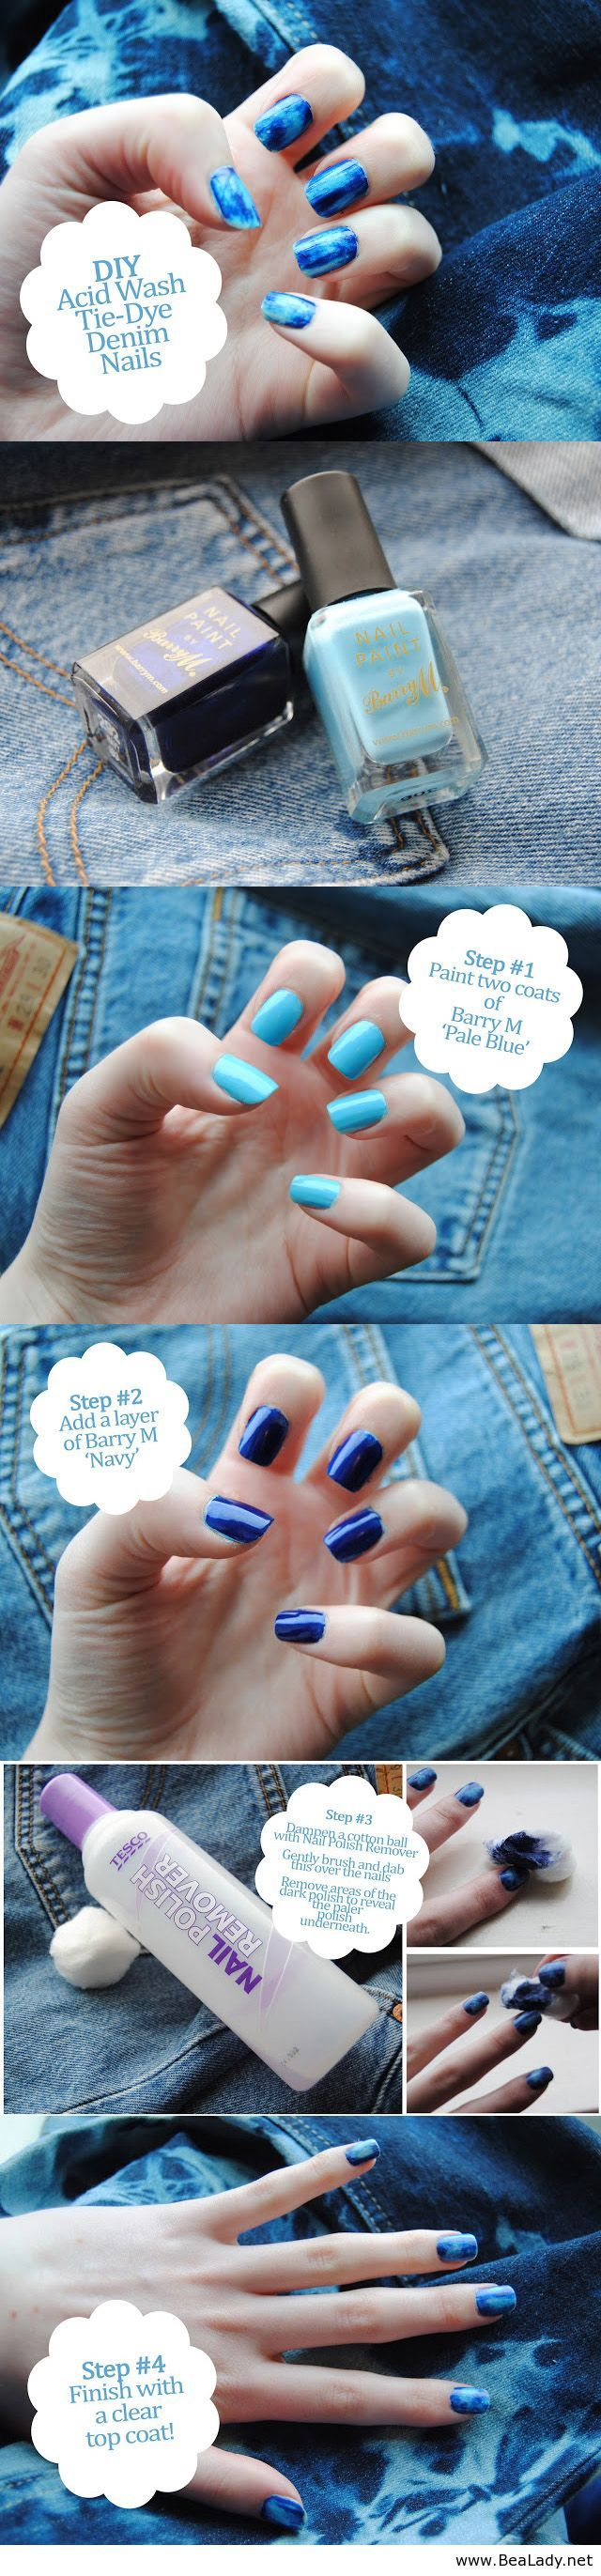 25 beautiful tie dye nails ideas on pinterest cool nail designs tutorial on tie dye nails prinsesfo Choice Image